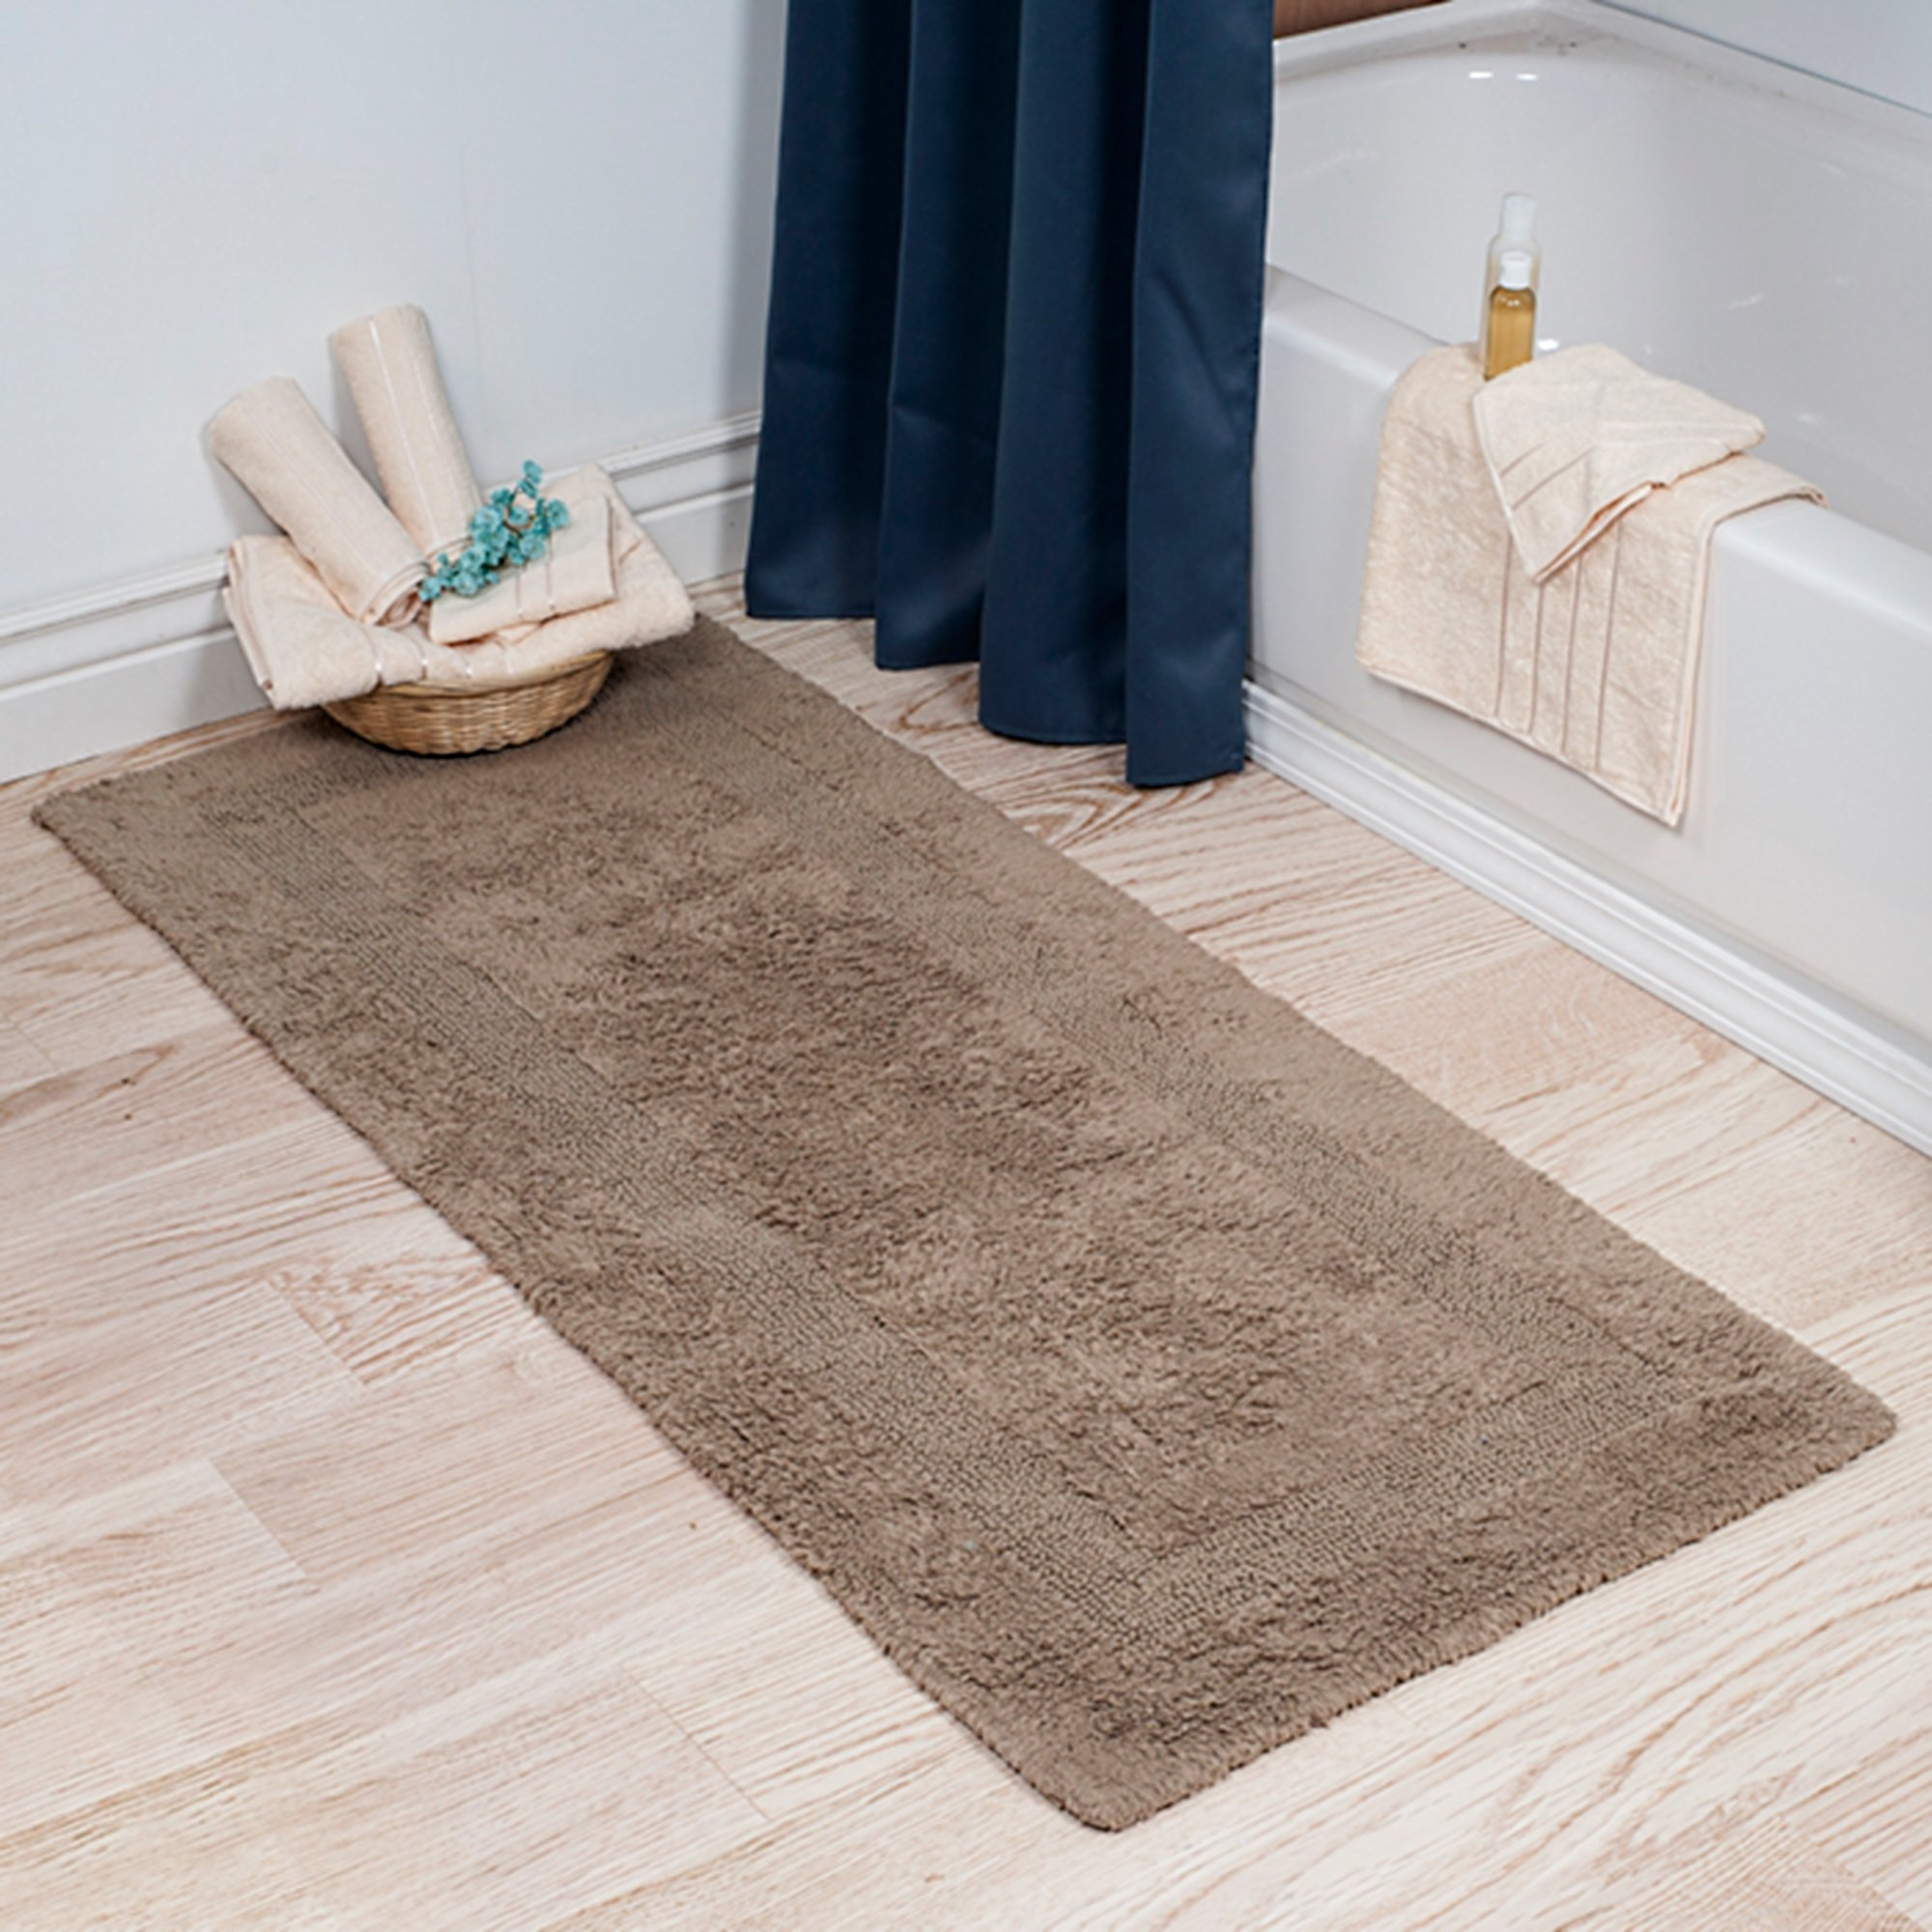 Extra Long Bath Floor Mat